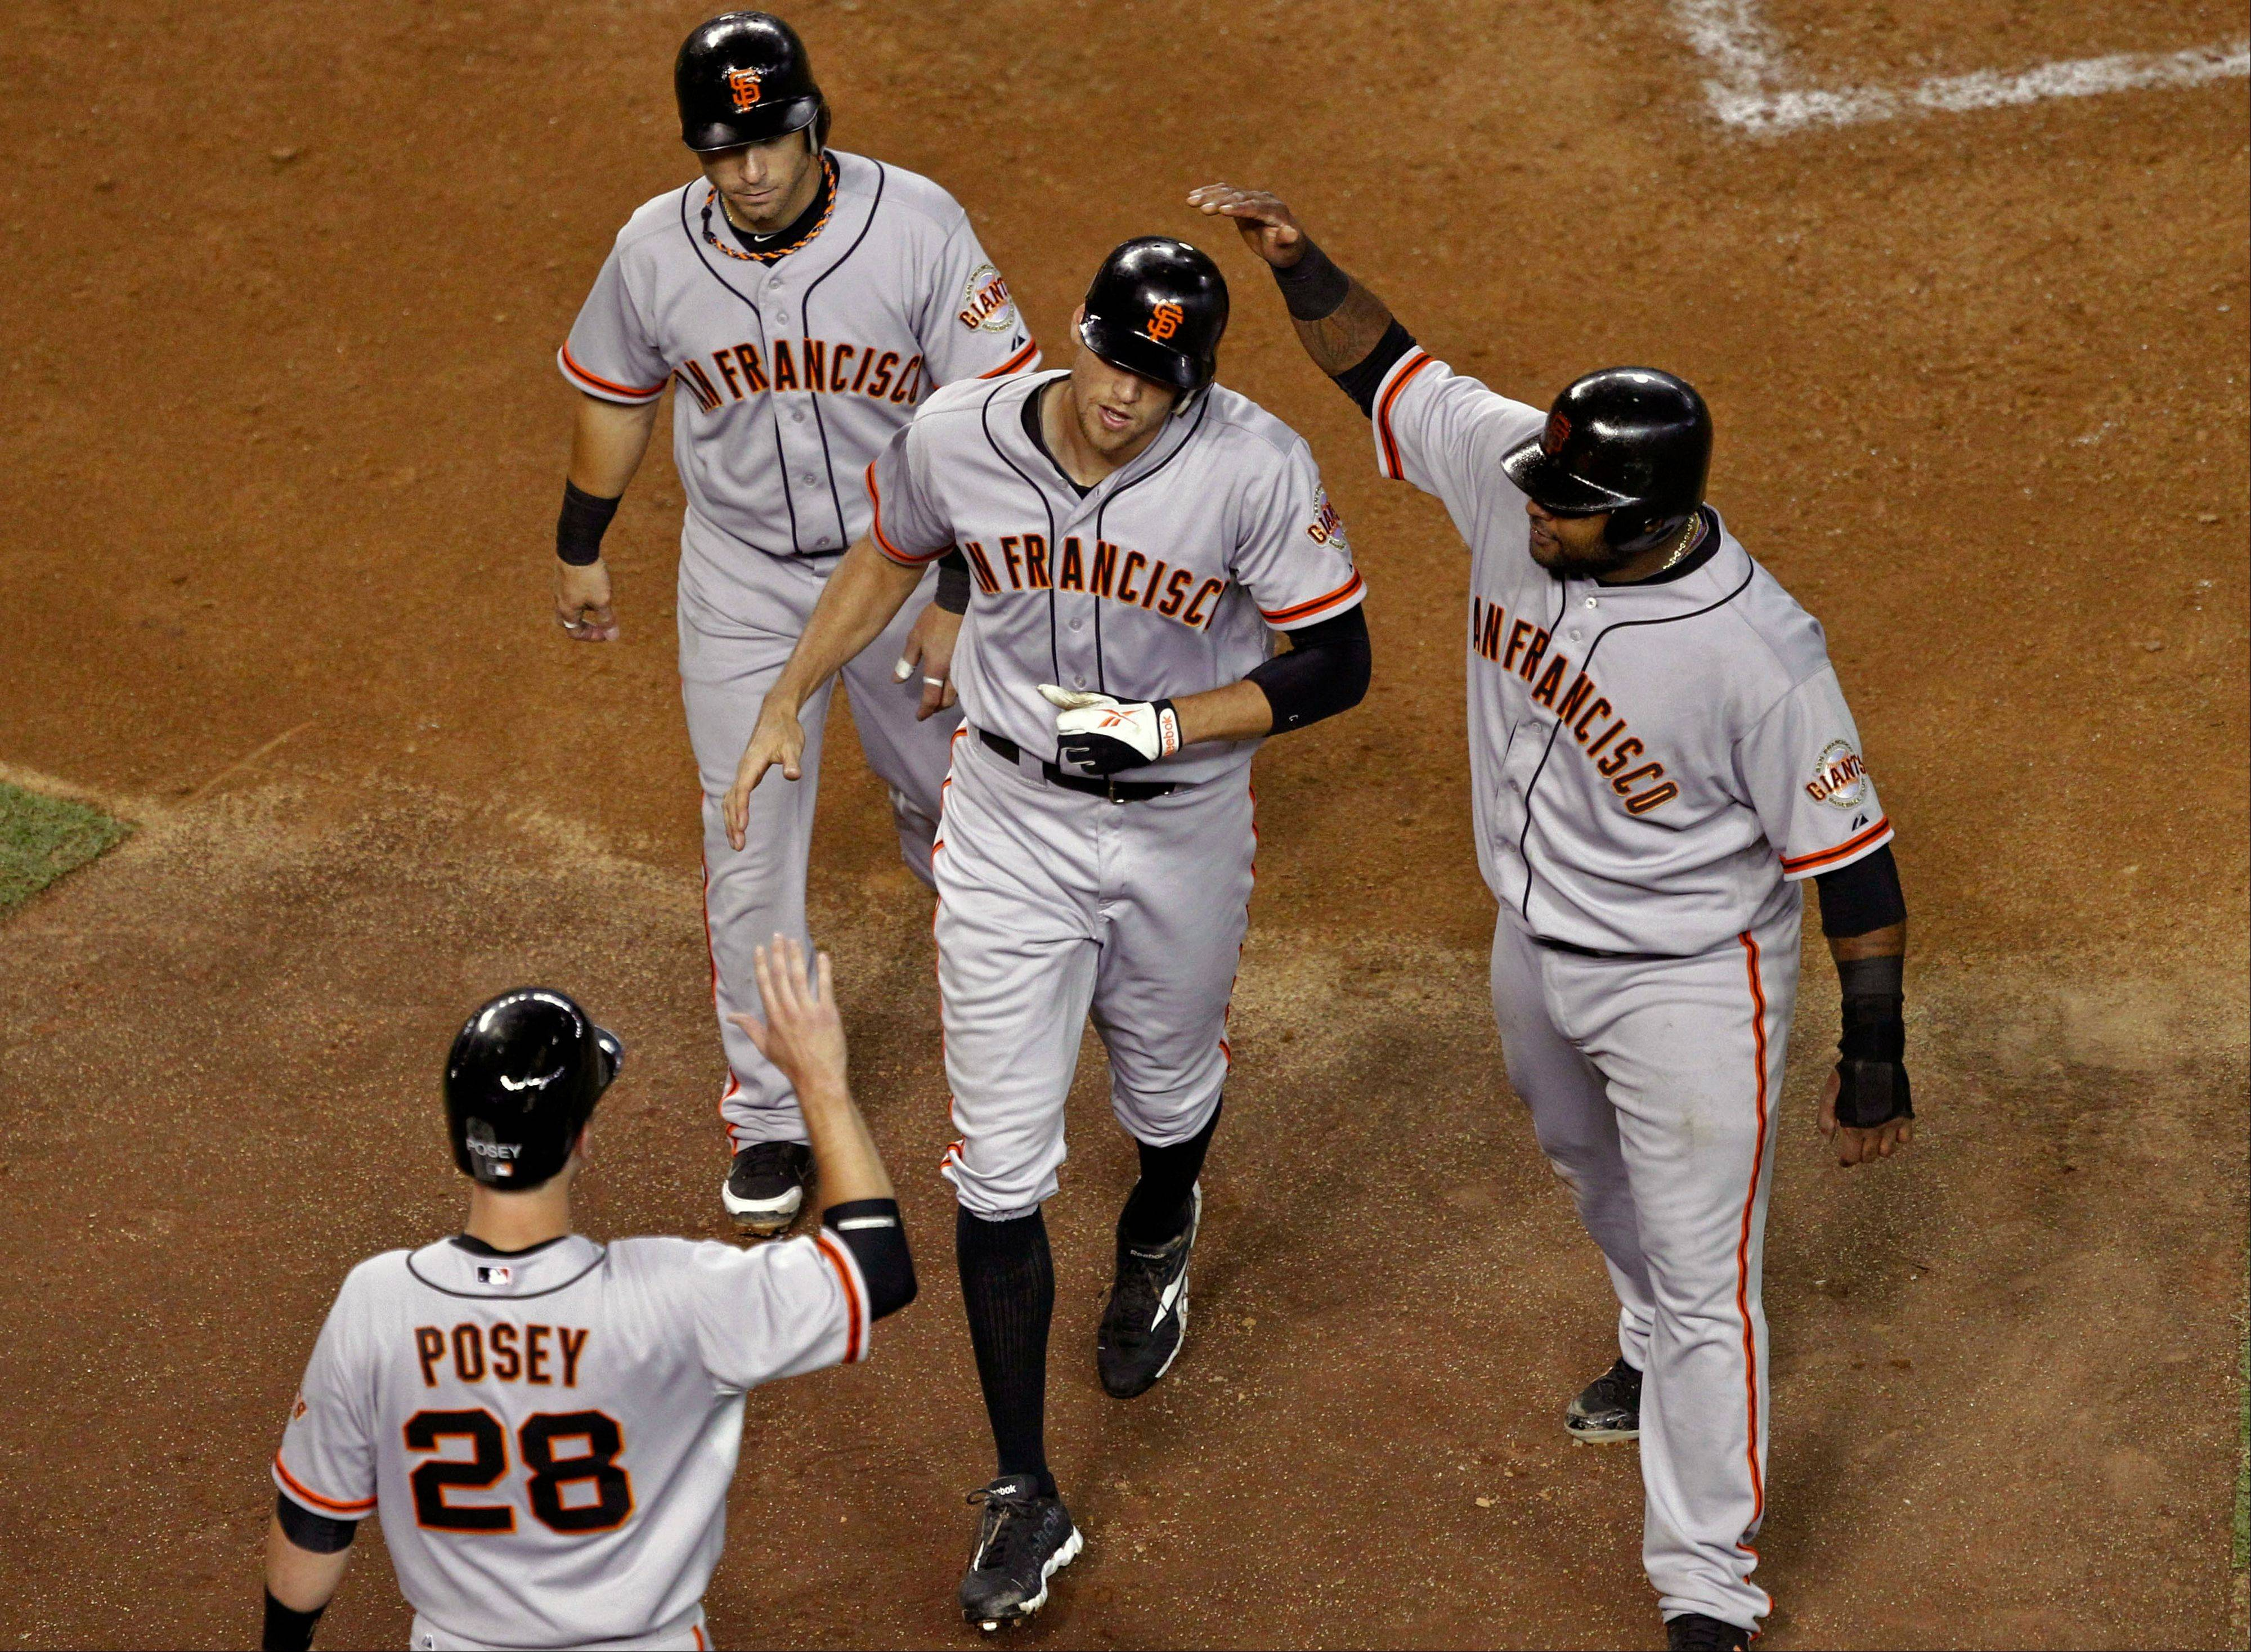 San Francisco's Buster Posey, Marco Scutaro, top left, and Pablo Sandoval, right, greet Hunter Pence after his a grand slam against the Arizona Diamondbacks during the third inning Friday in Phoenix.